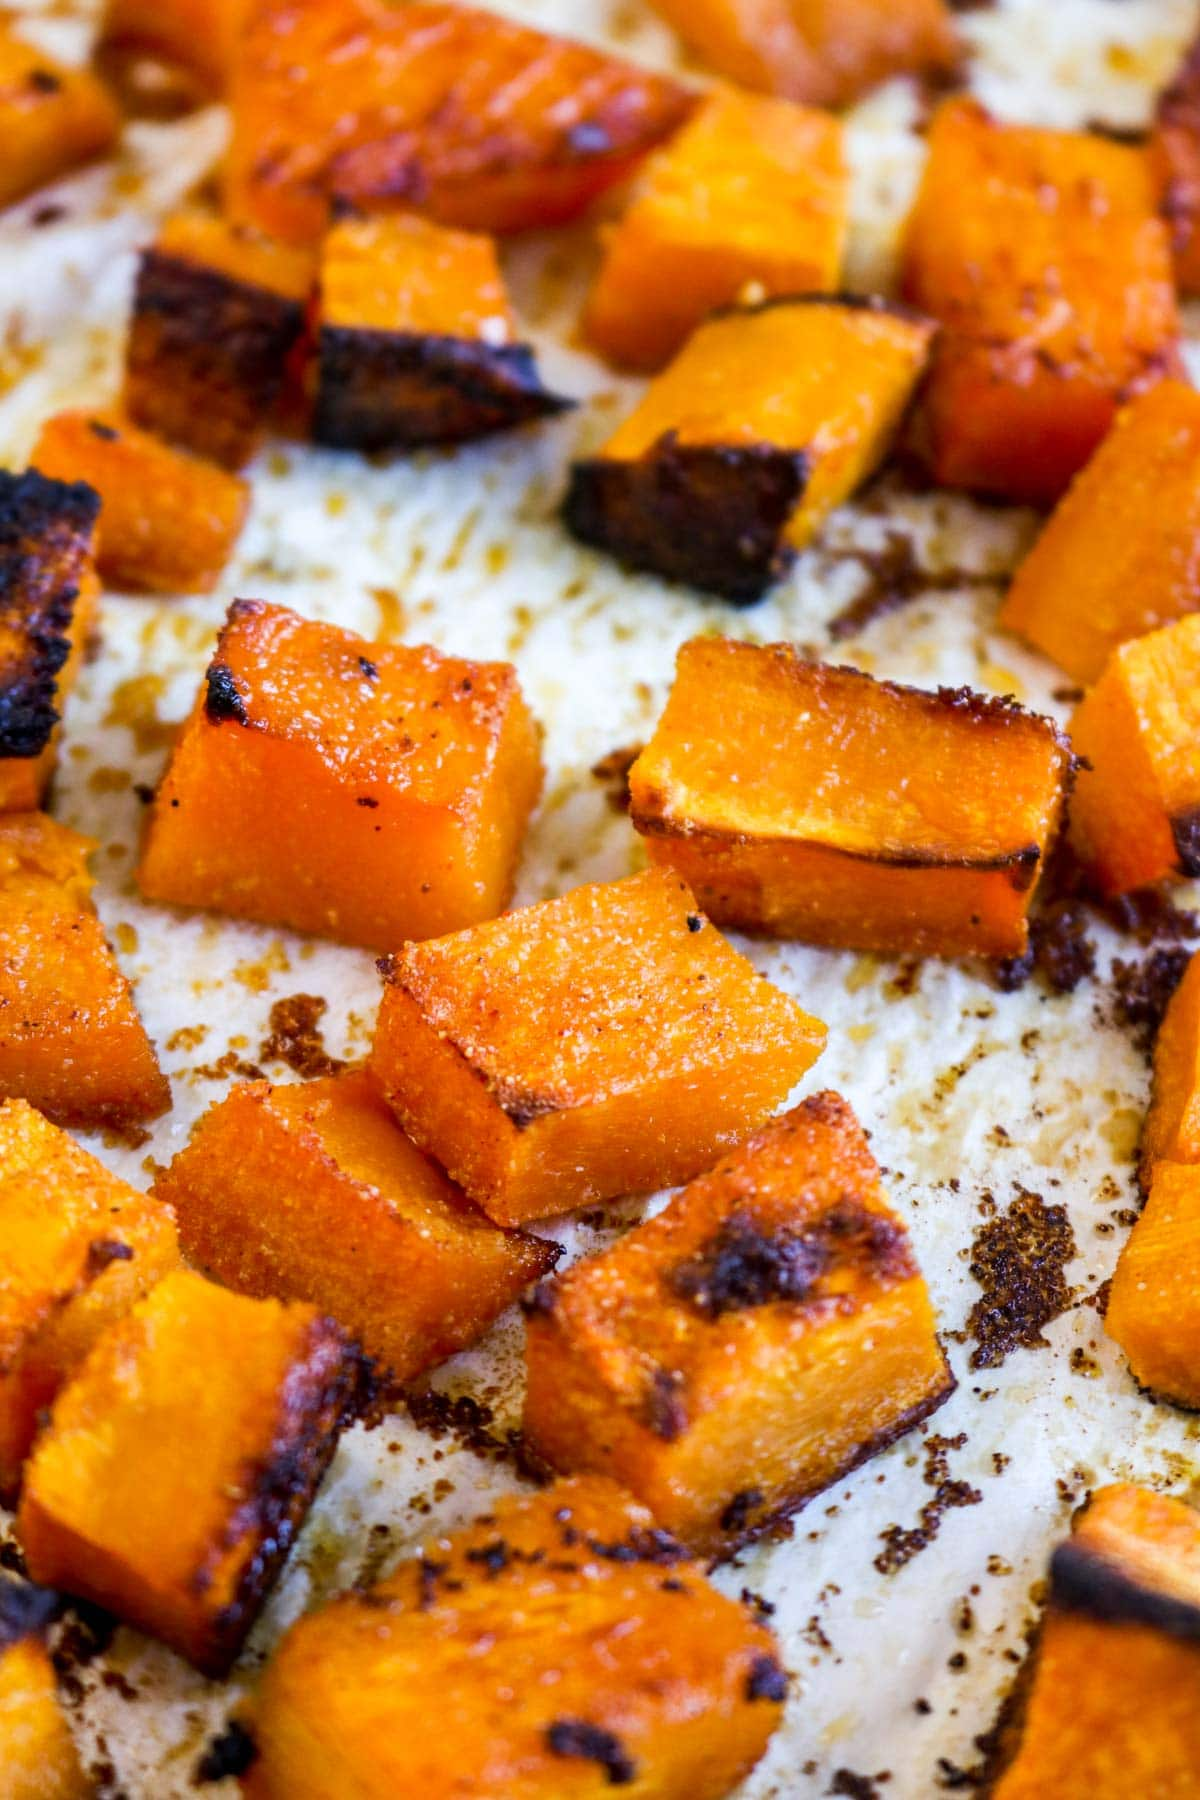 Cubed and roasted butternut squash on a sheet tray.